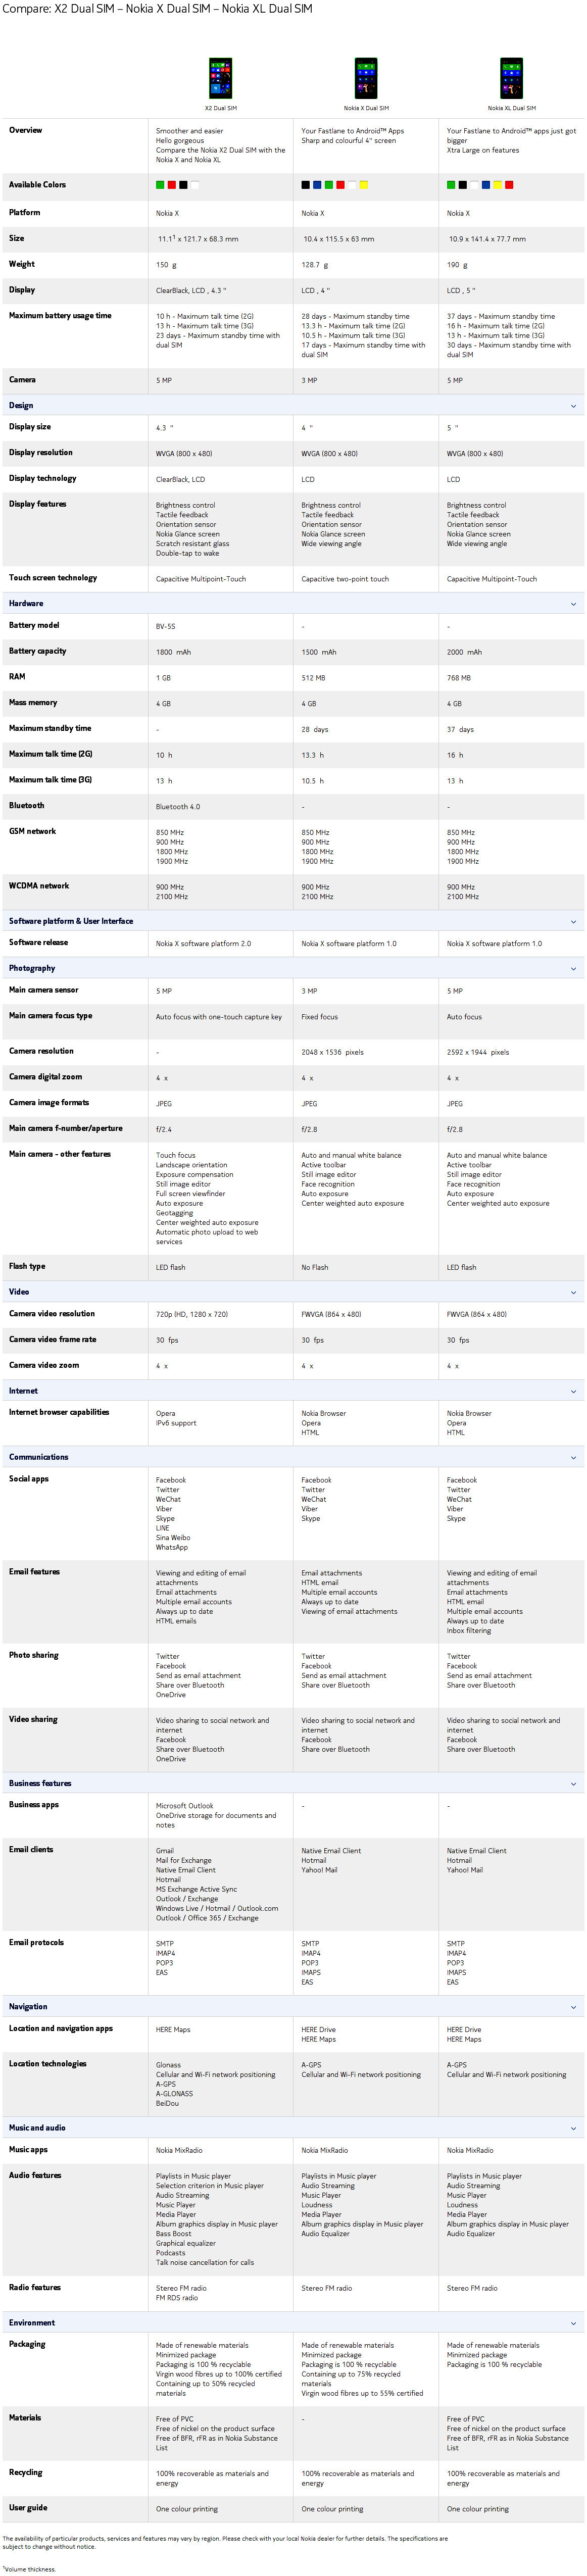 Nokia X2 Dual SIM Comparison Table